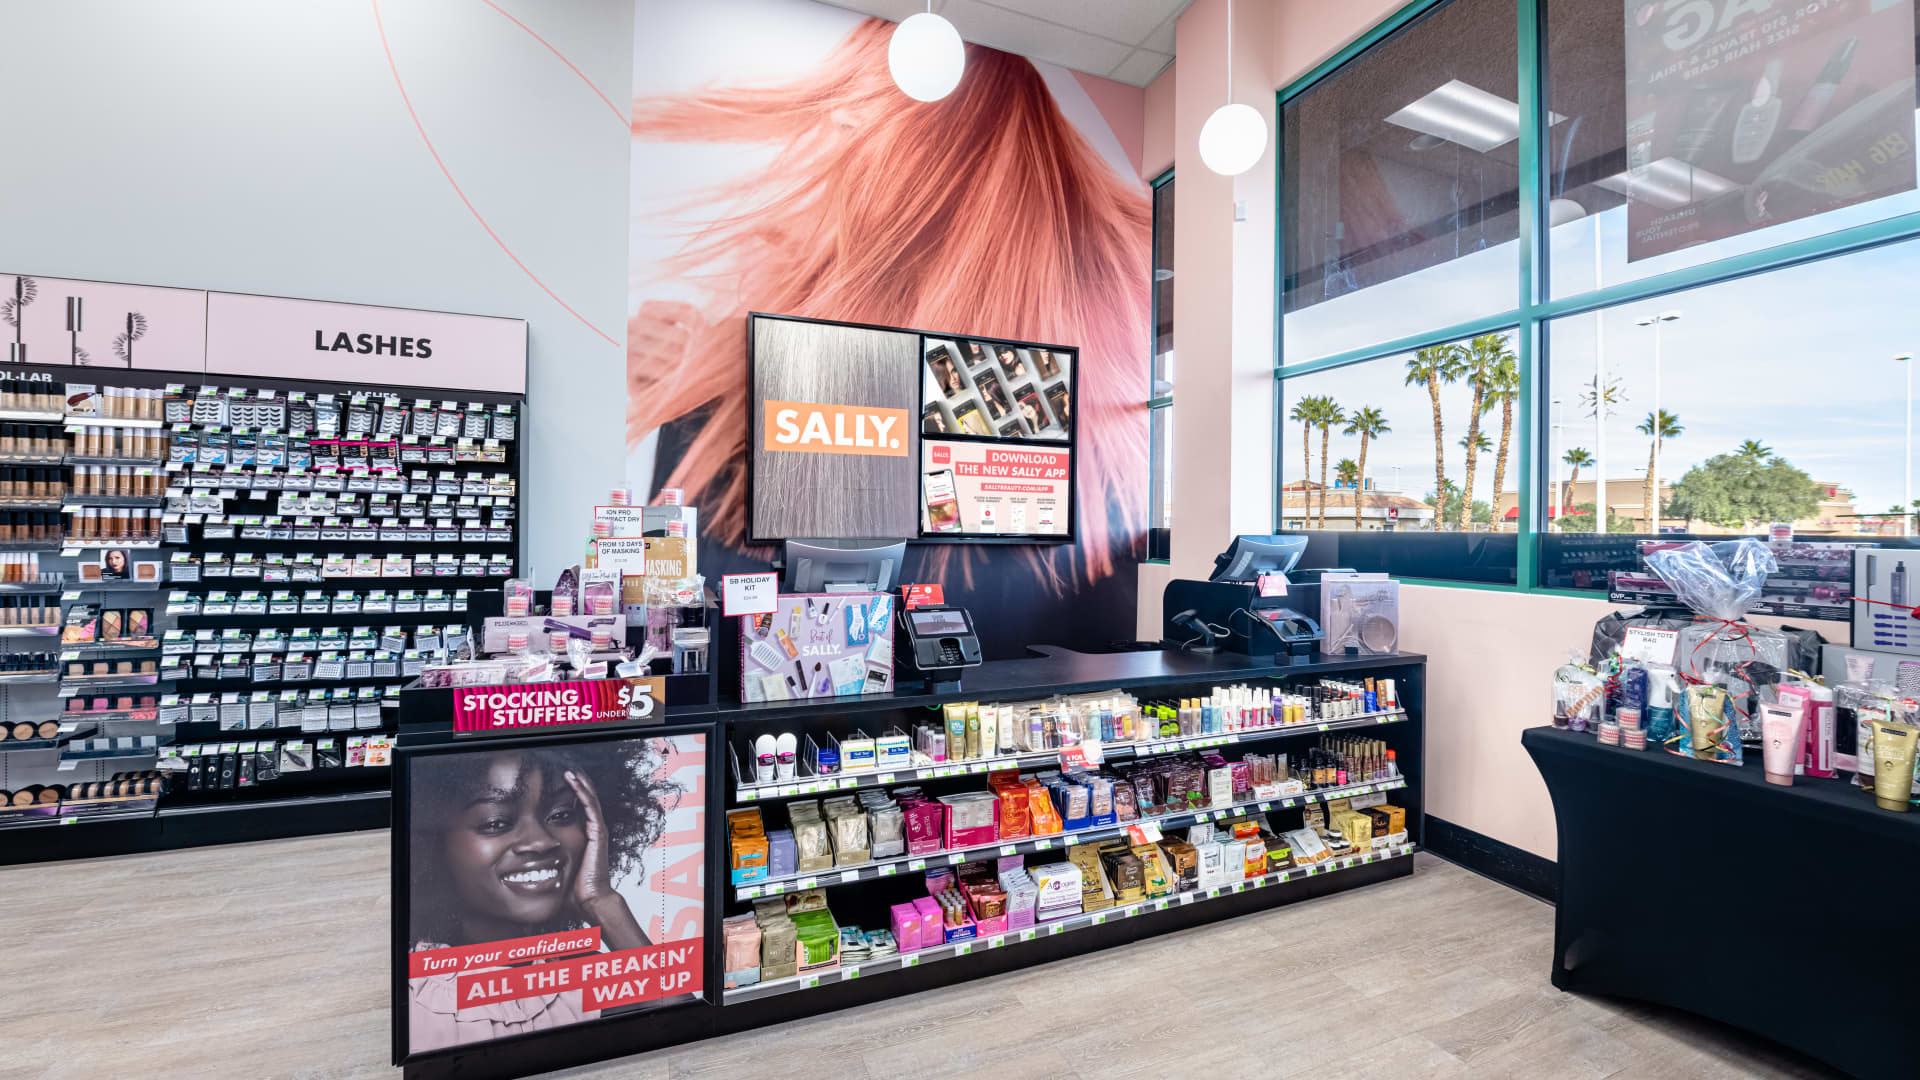 Sally Beauty has leaned into vivid color as one of its sales drivers, as younger consumers embrace self-expression.